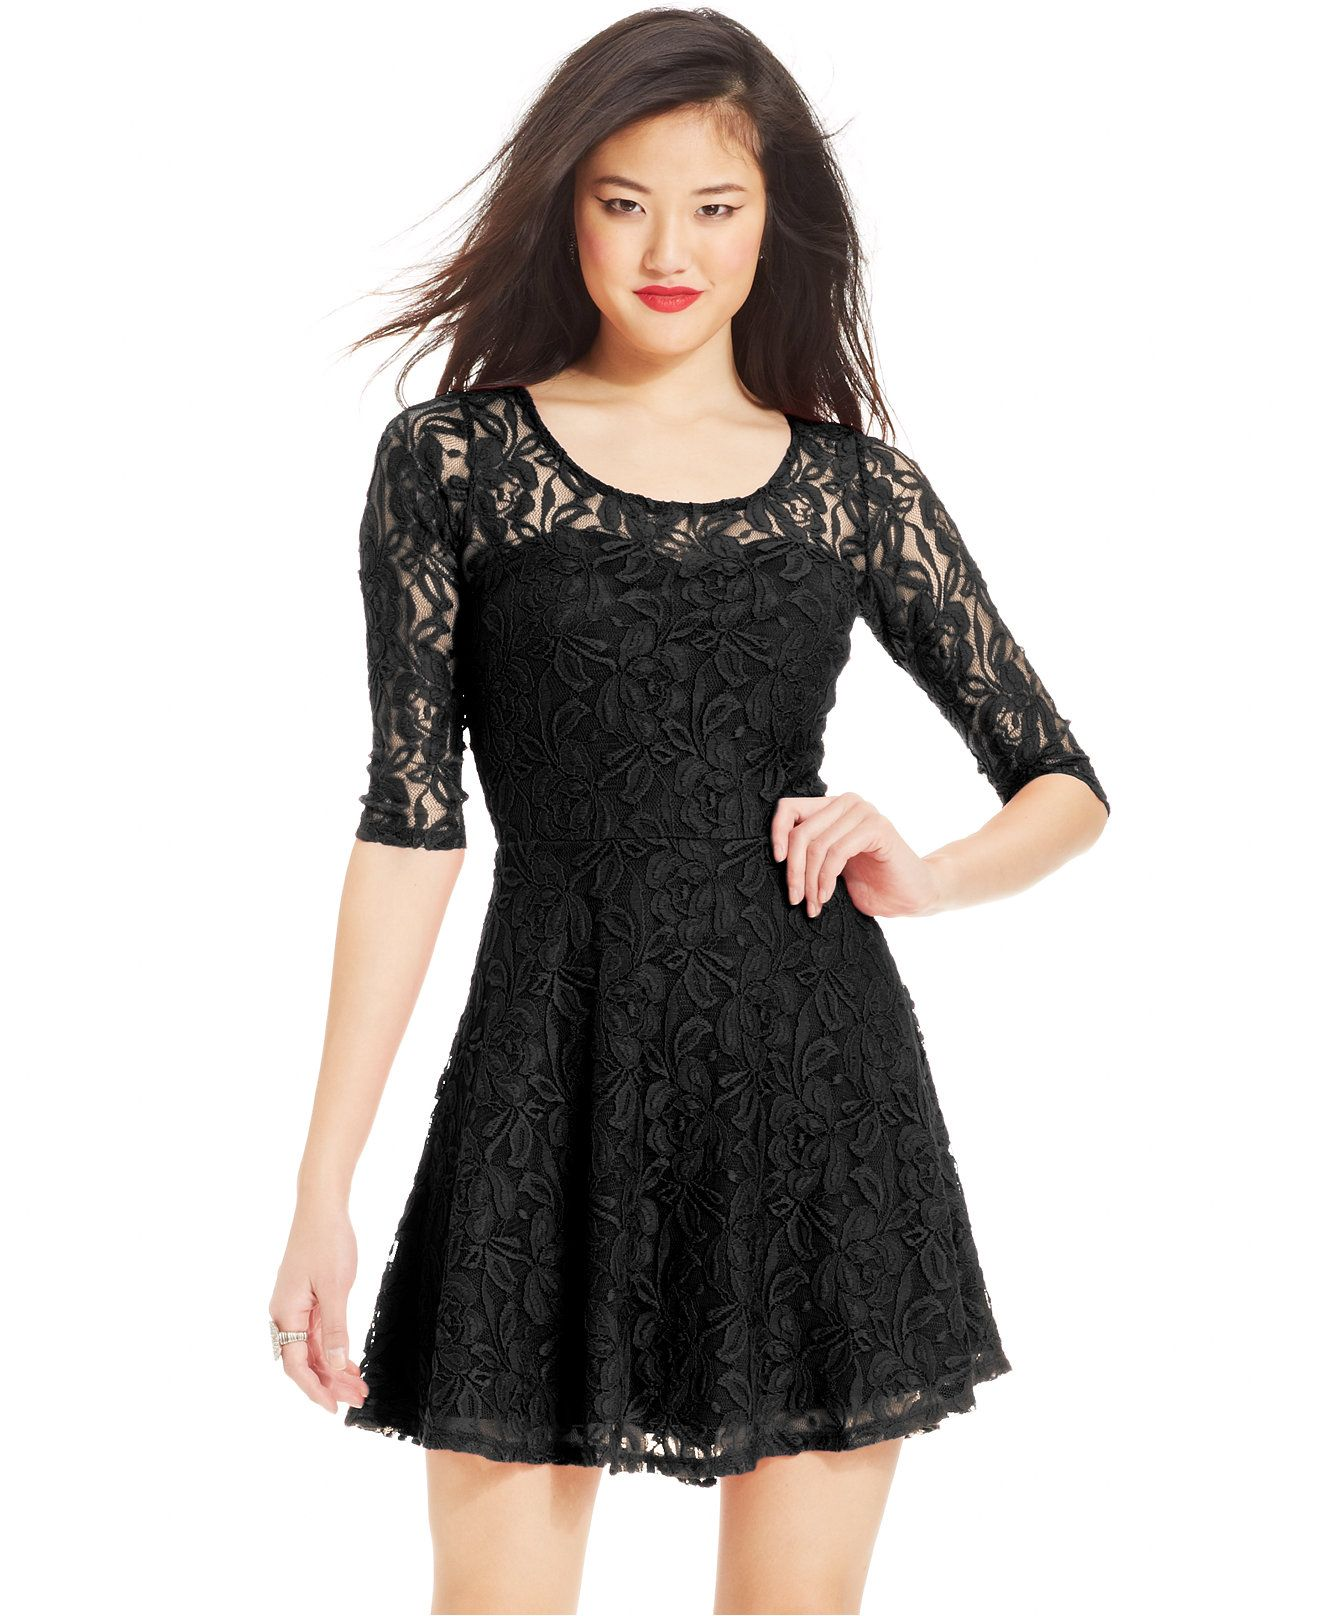 95cb6a2e6f Material Girl Short-Sleeve Lace Skater Dress - Juniors Dresses - Macy s